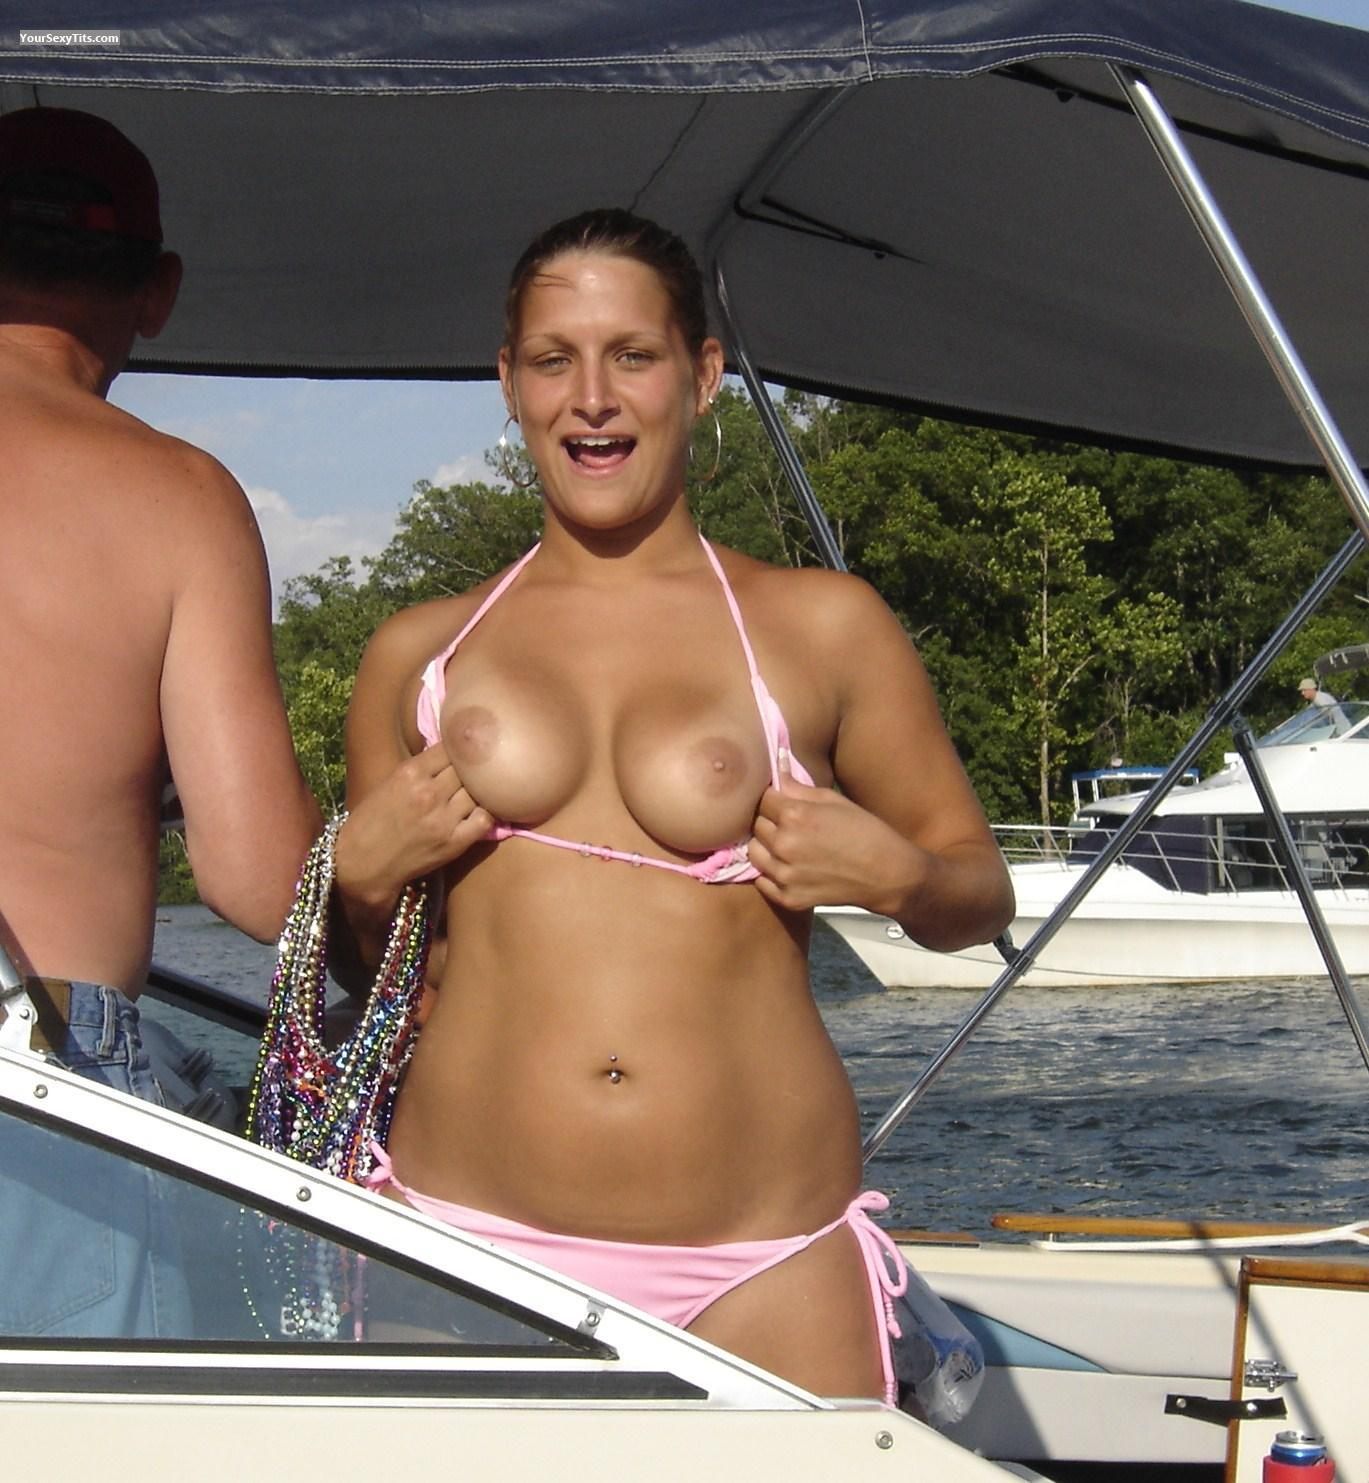 Tit Flash: Medium Tits - Topless None from United States